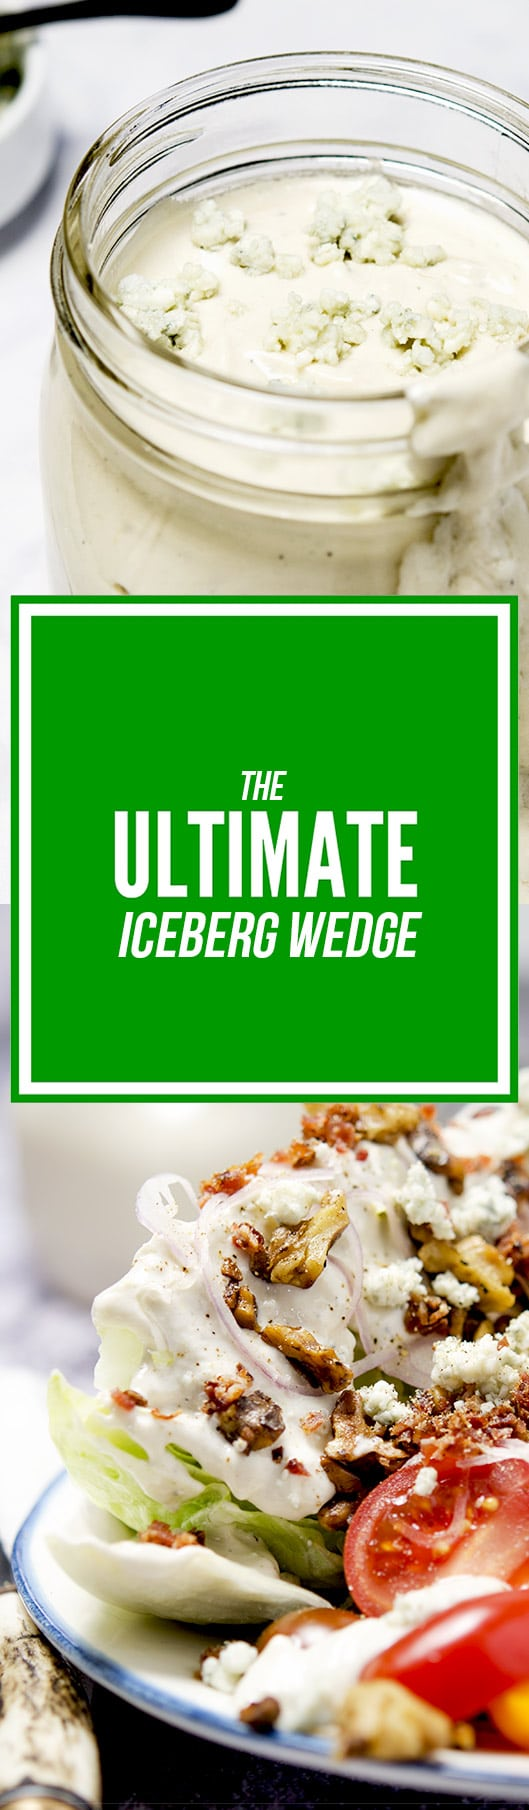 The perfect iceberg wedge salad has blue cheese dressing, bacon bits,  shallots, butter - Ultimate Iceberg Wedge Salad I'd Rather Be A Chef